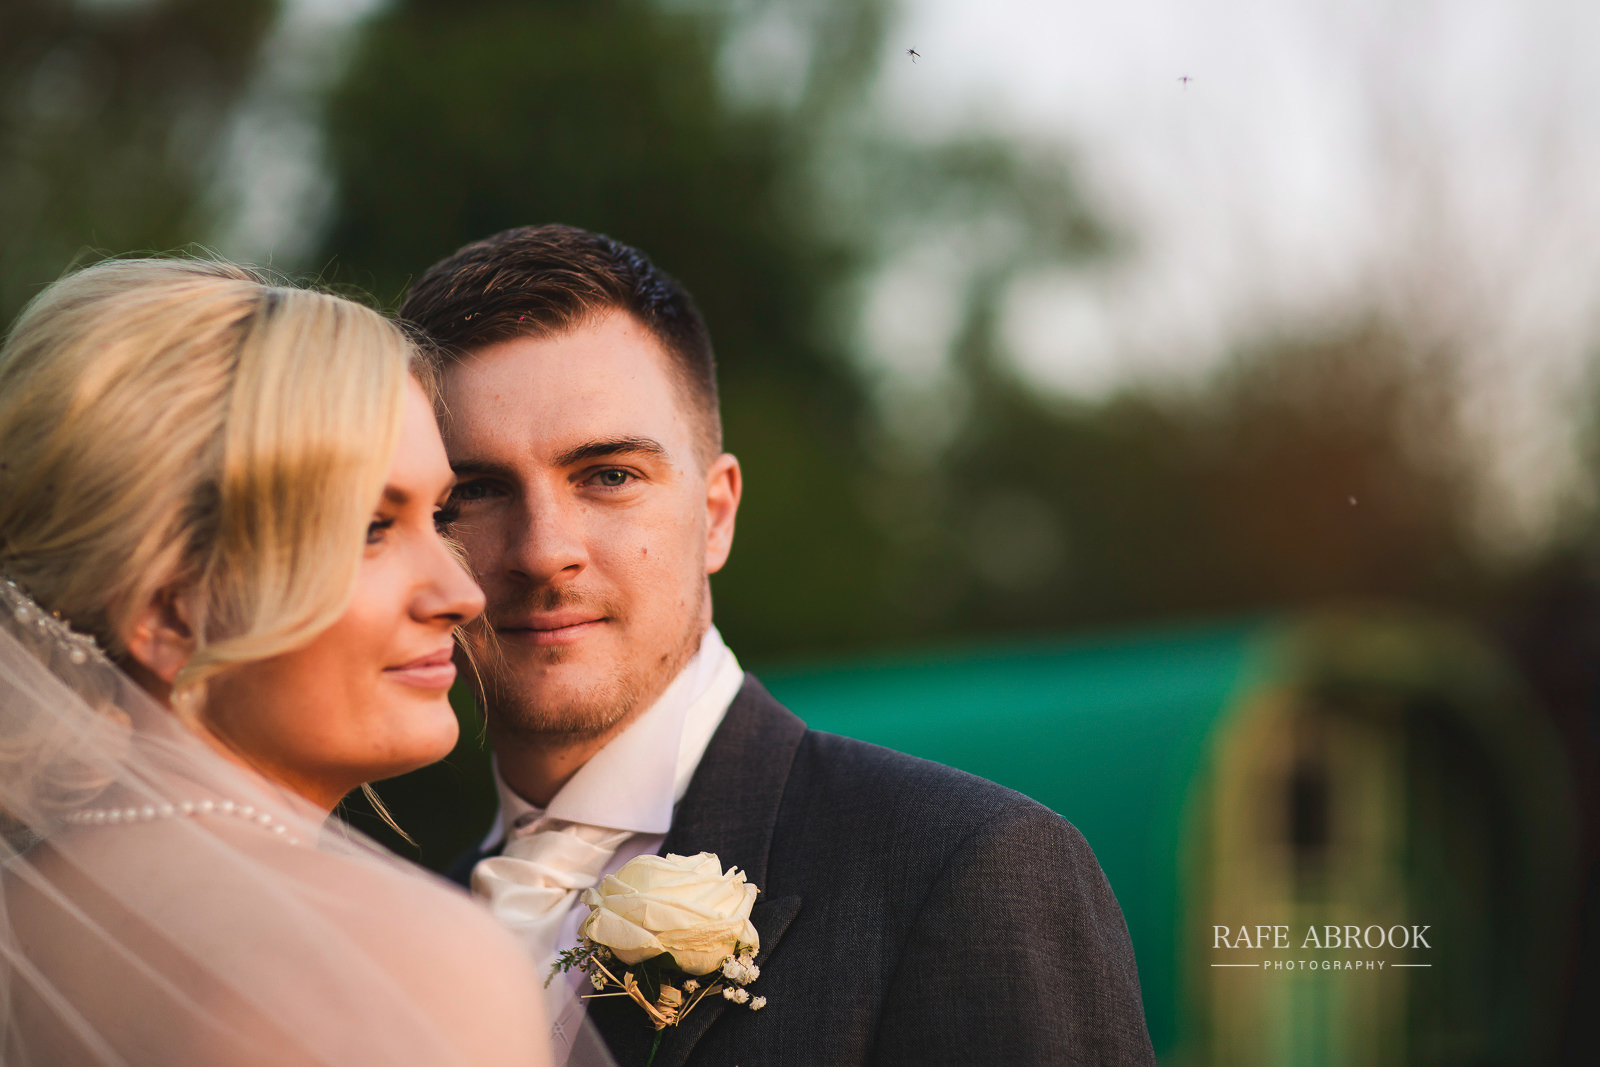 south farm wedding royston hertfordshire wedding photographer rafe abrook photography-1942.jpg